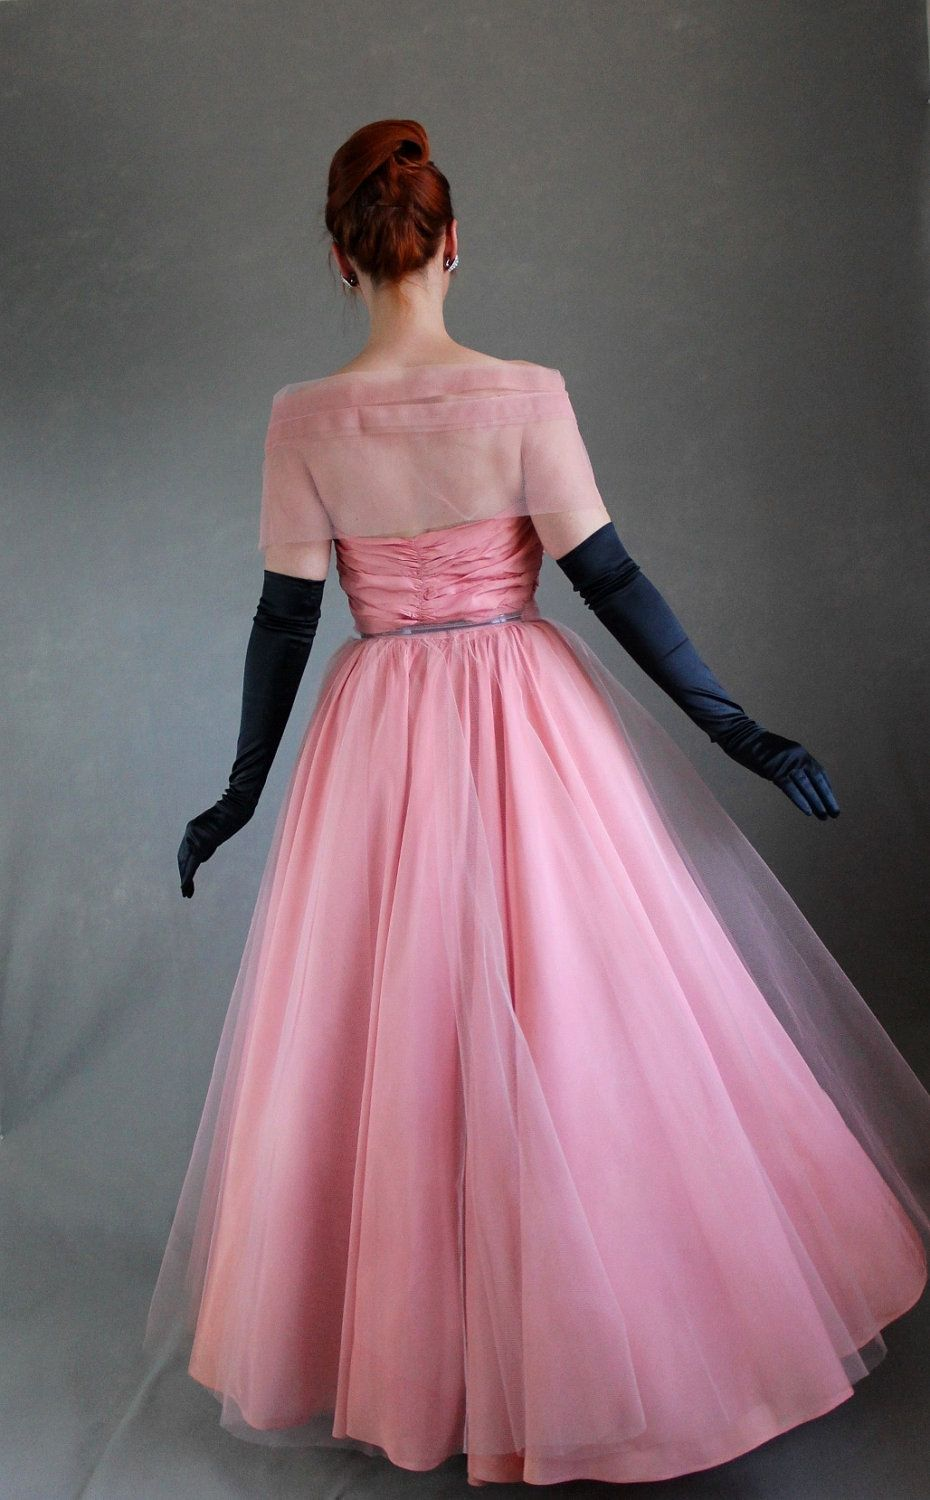 Sale 1950s Pink Party Prom Dress Mad Men Fashion Evening Etsy 50s Formal Dress Pink Party Dresses Dresses [ 1500 x 930 Pixel ]